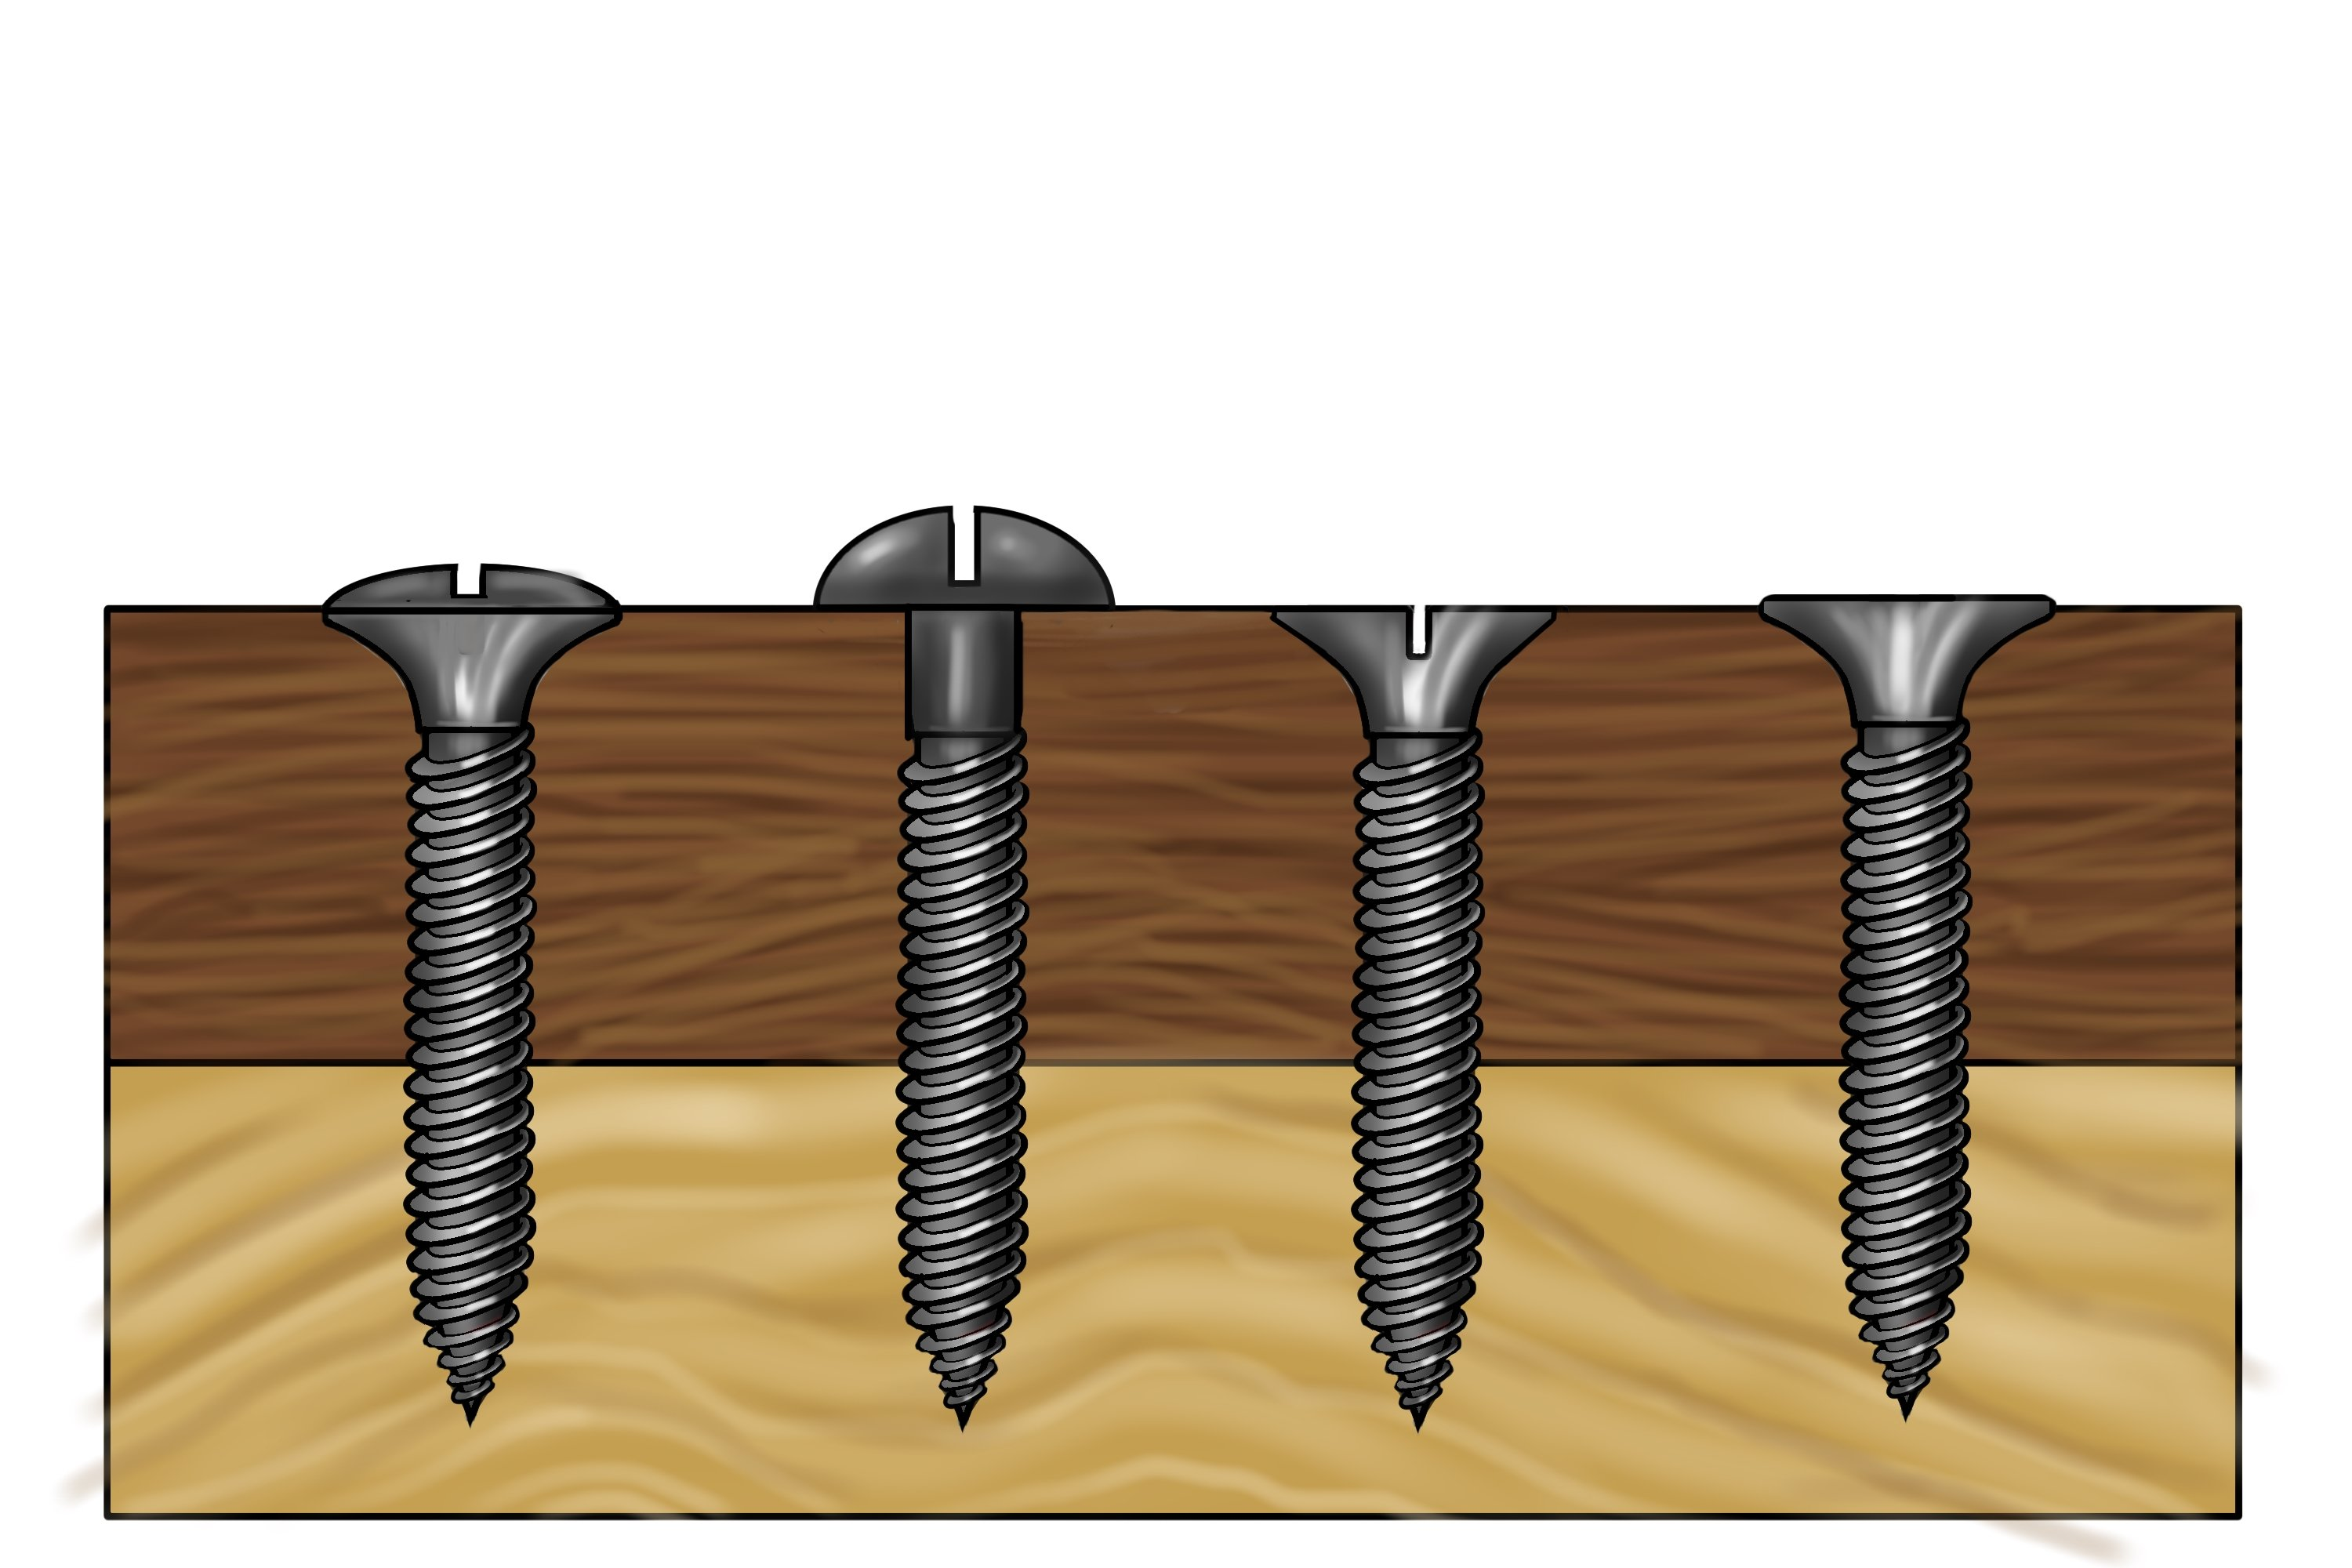 A raised head screw and a domed head screw no sitting flush and a countersunk head screw and a bugle head screw sitting flush on a piece of material